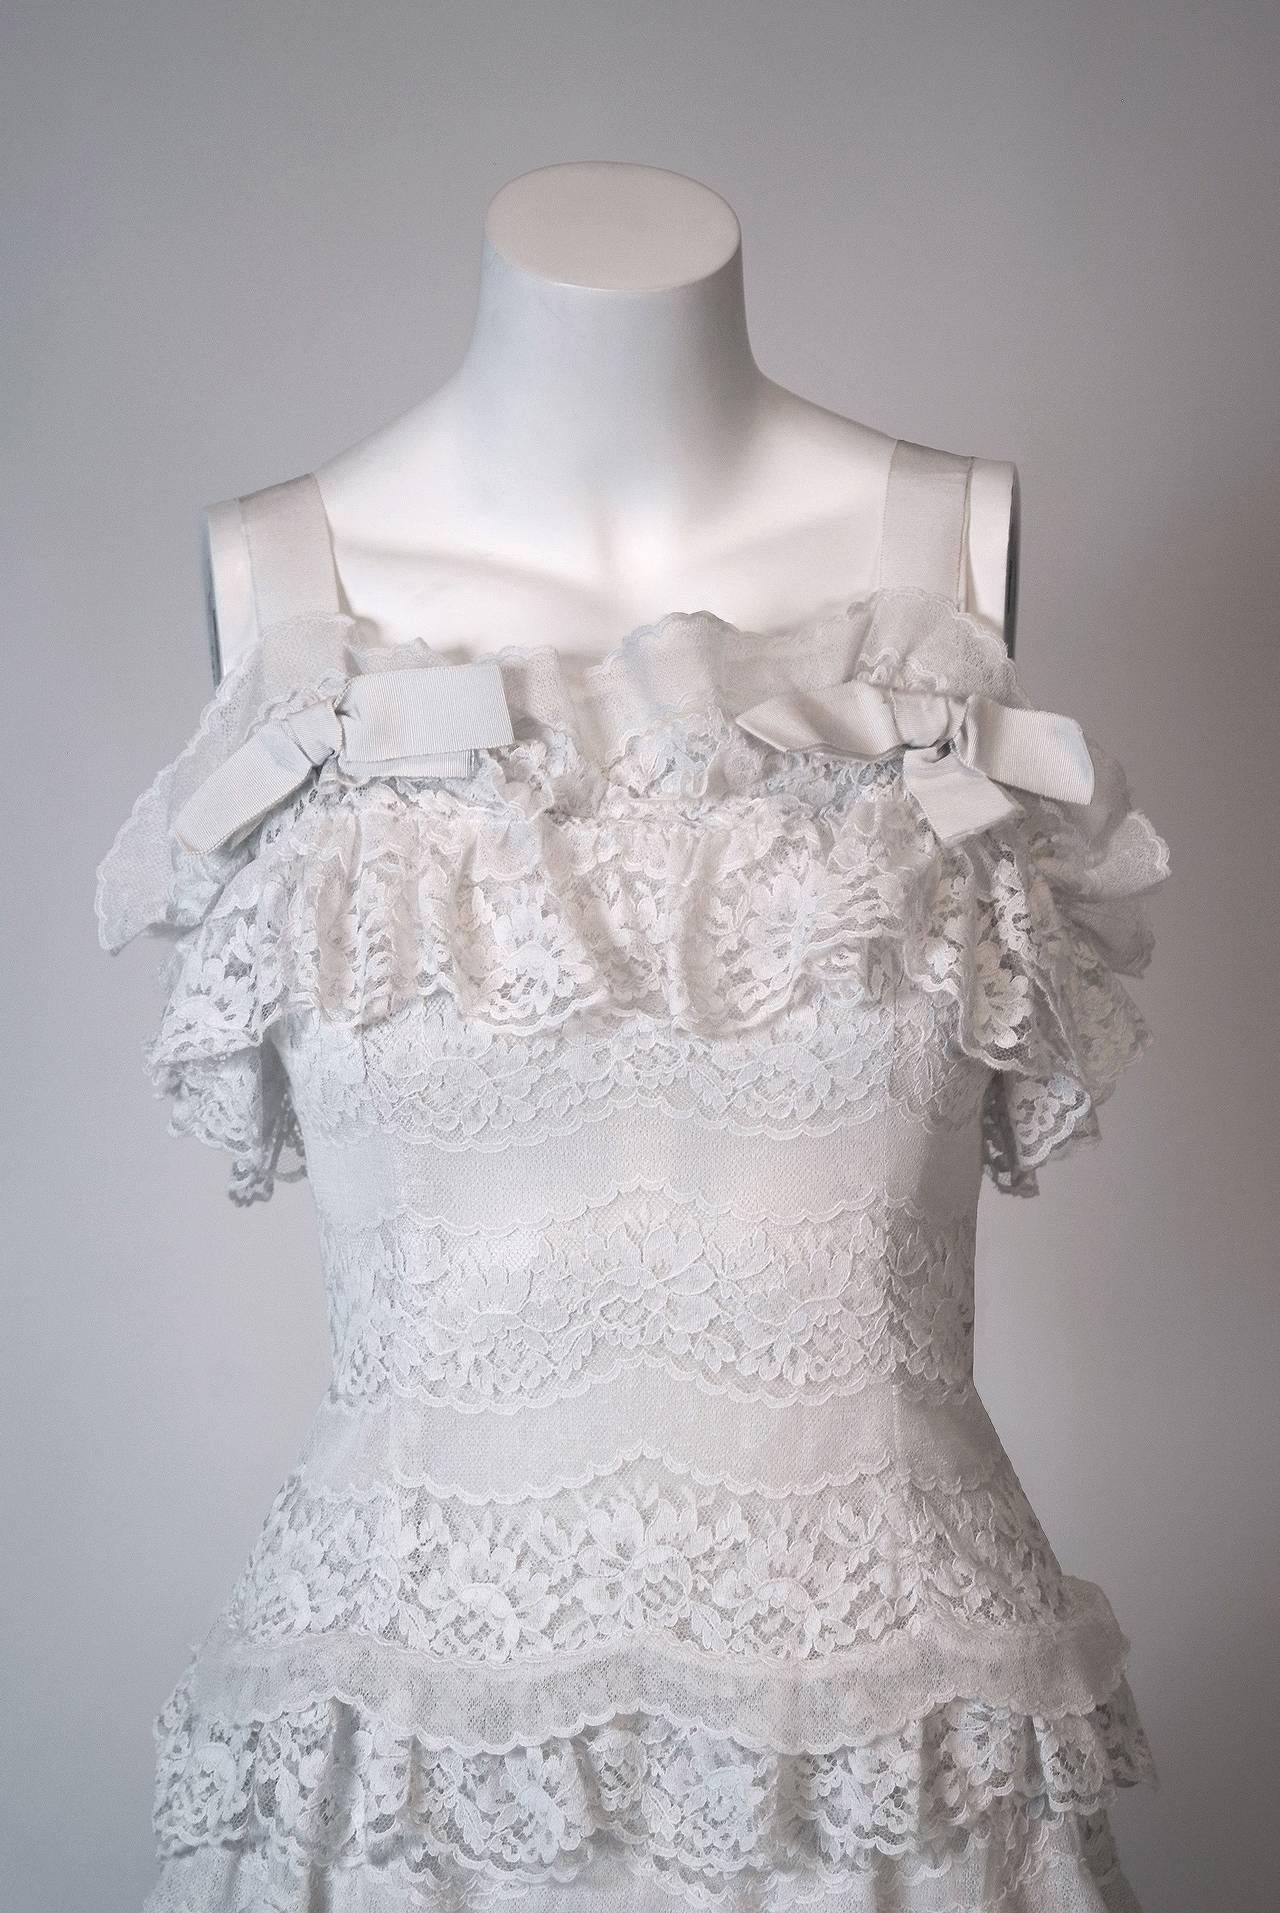 1962 Christian Dior Paris Demi-Couture White Tiered Ruffle Lace Formal Gown 3